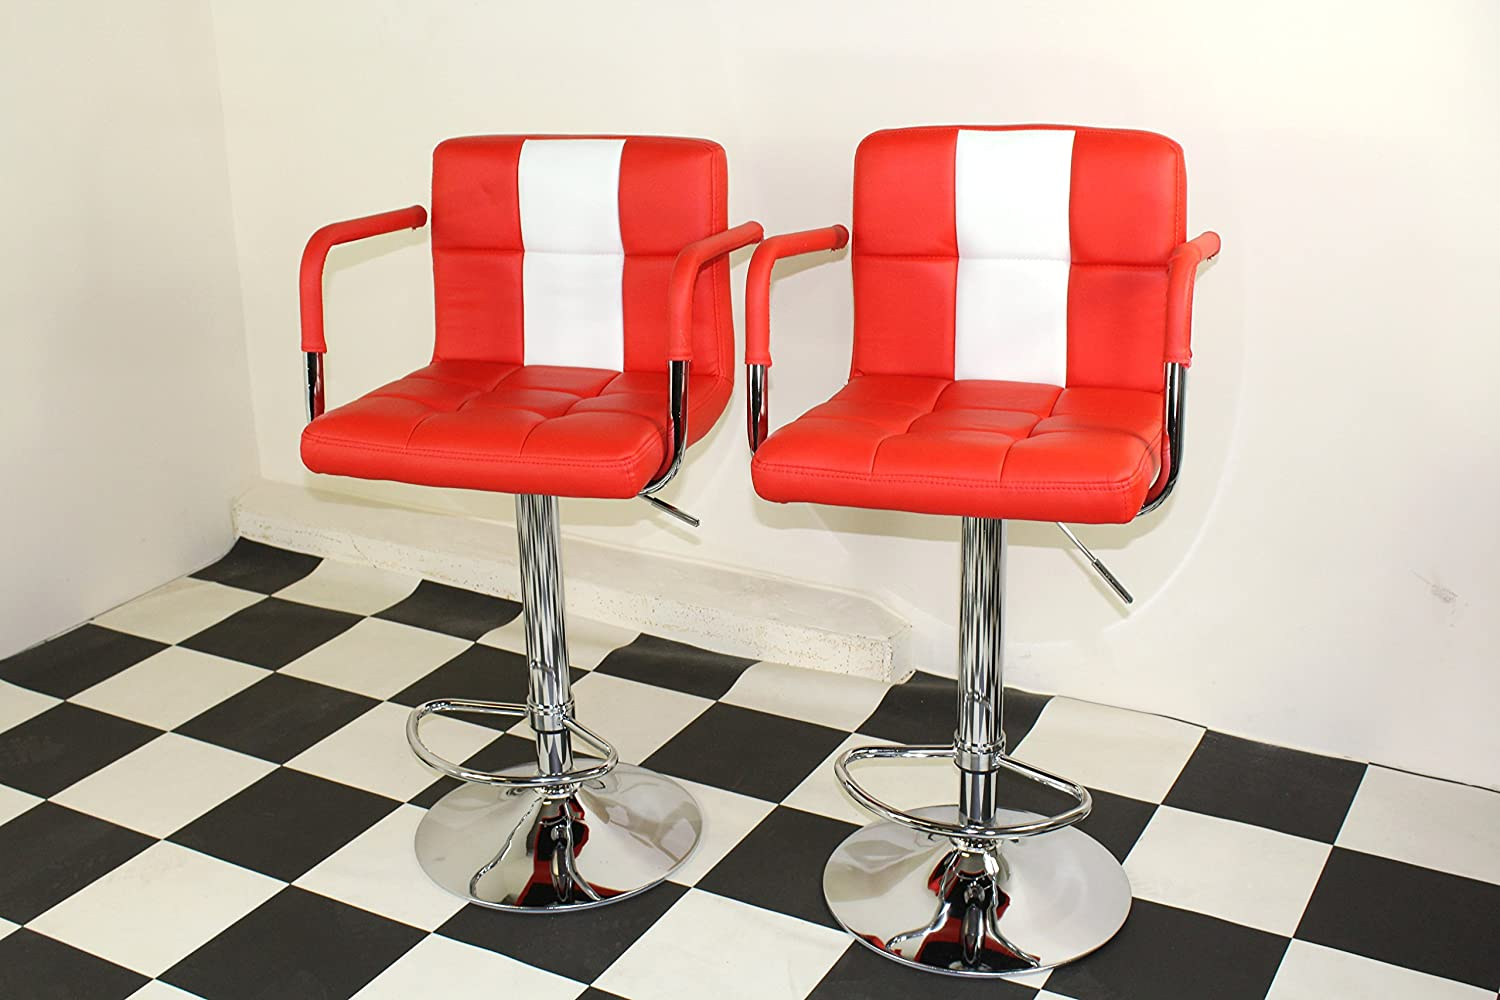 American Diner Kitchen Accessories American 50s Diner Furniture Budget Retro Style Booth Table And 4